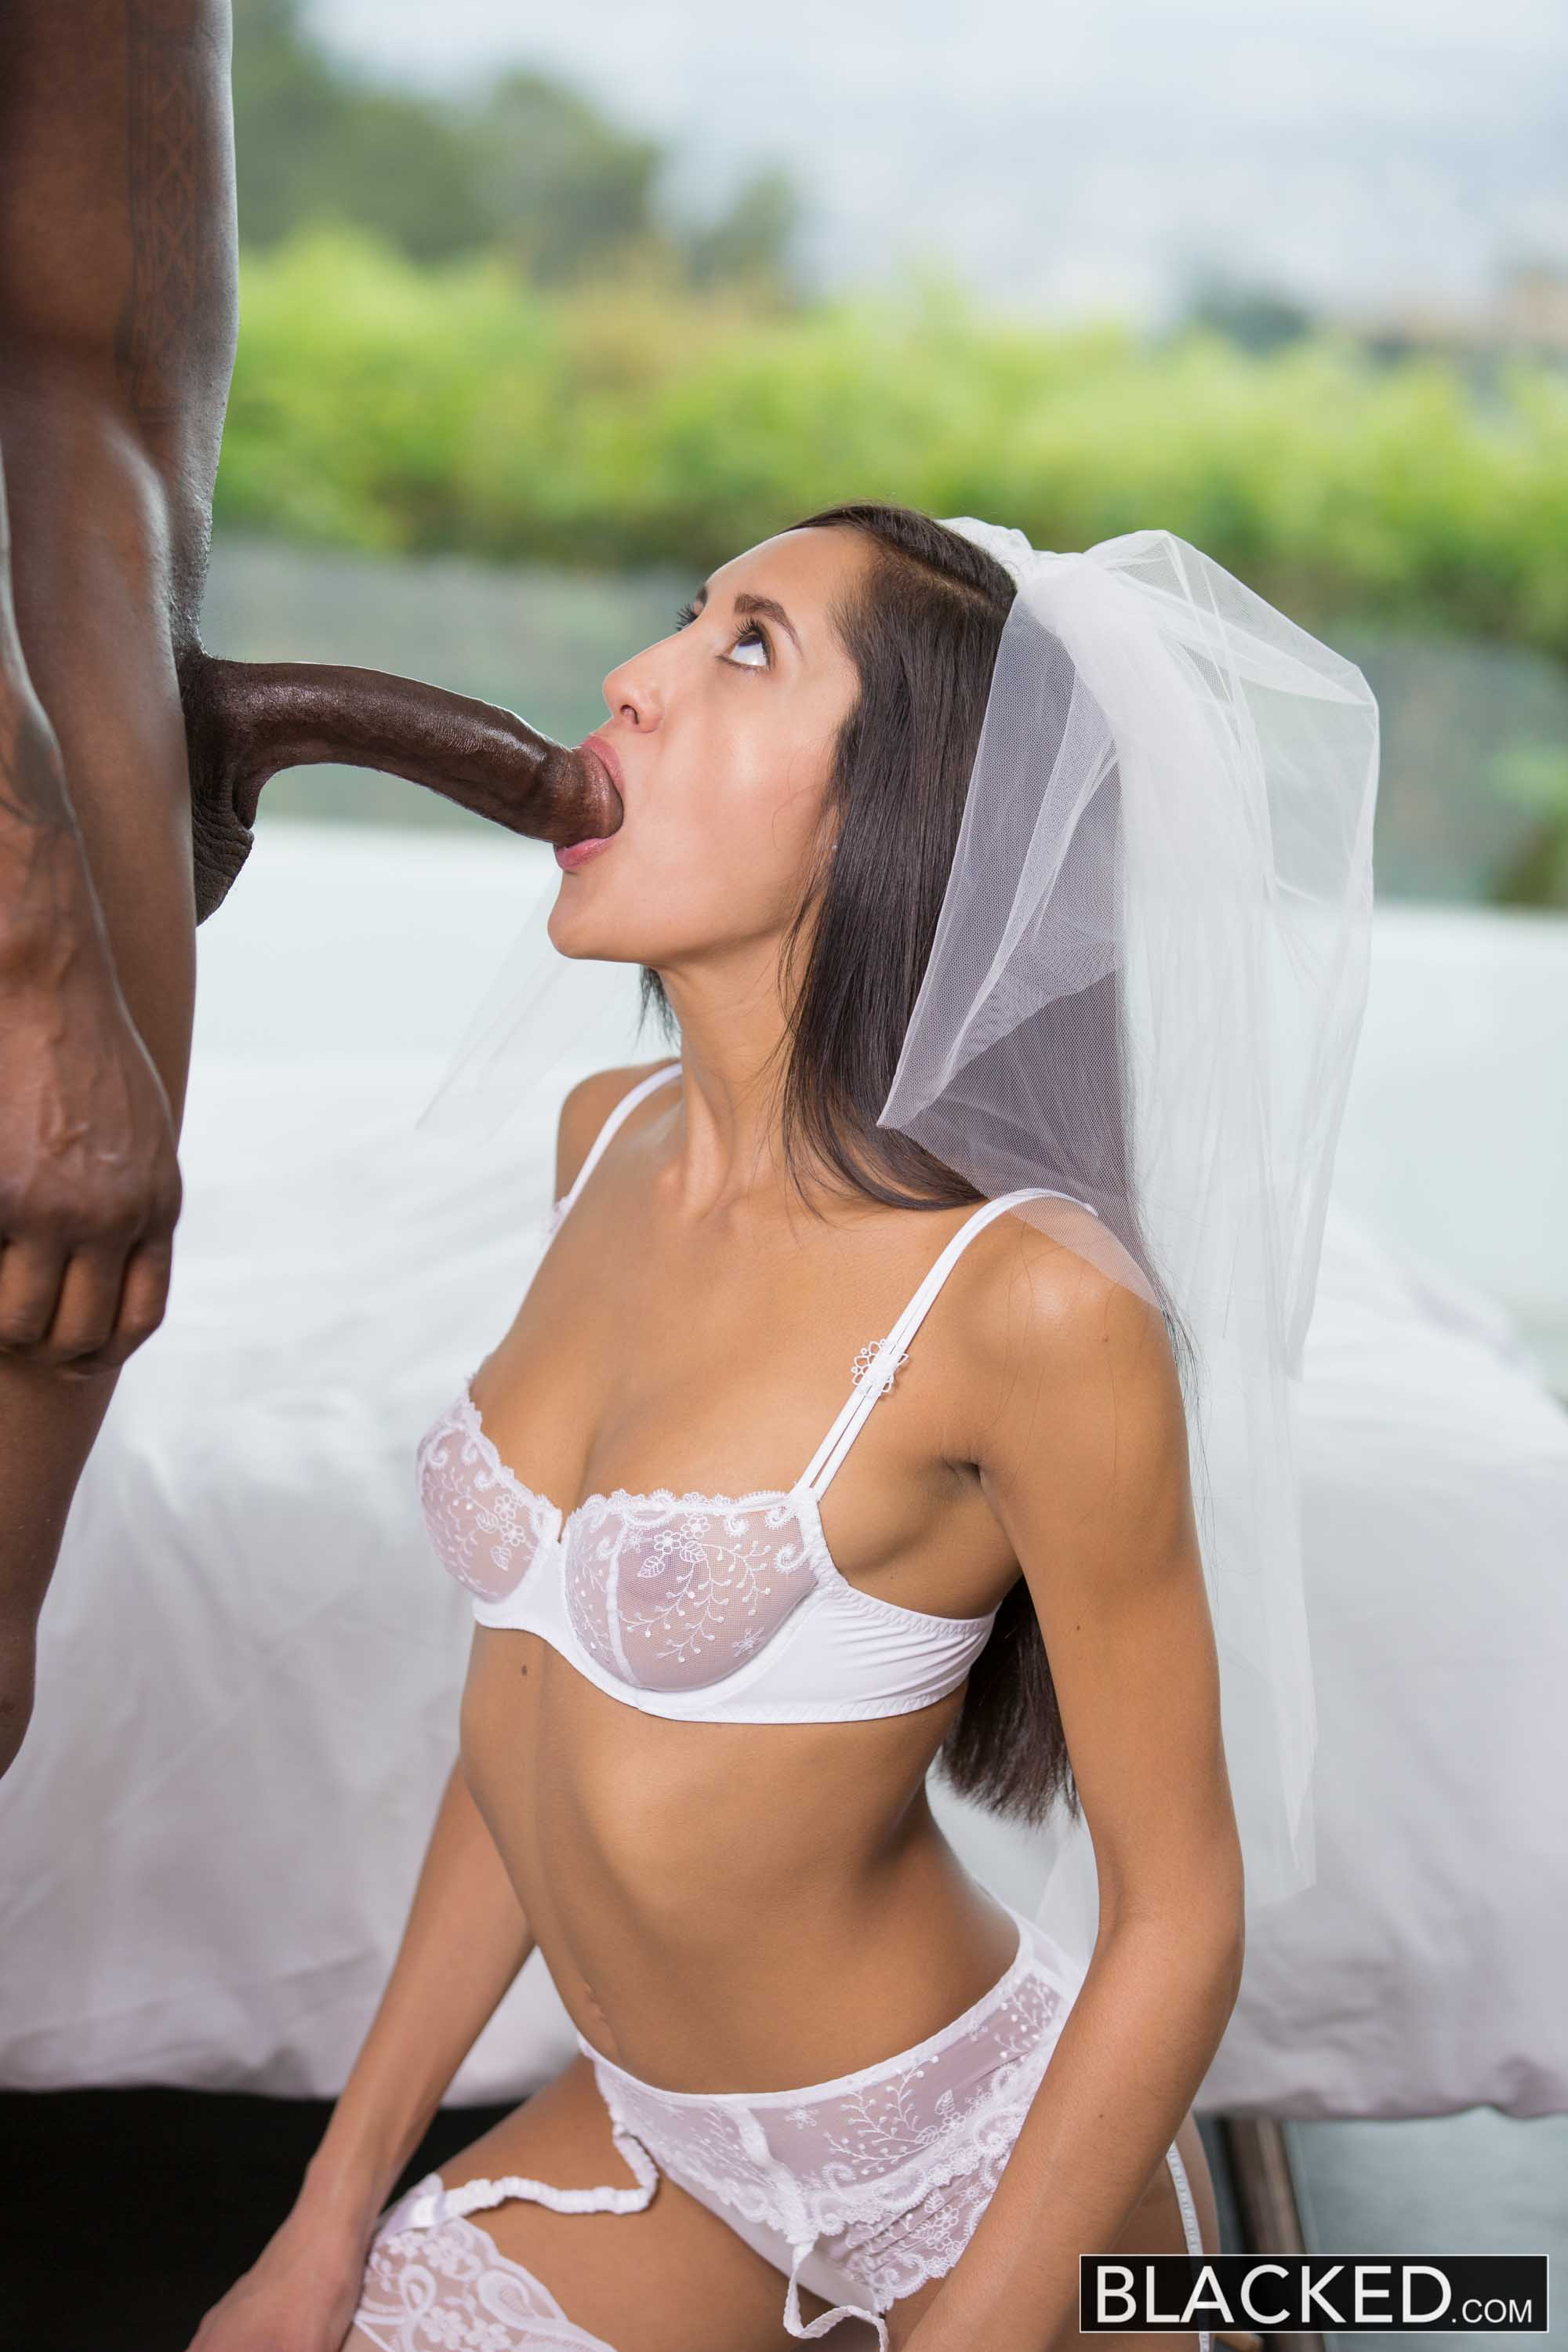 Brittany blaze wants cock now 7